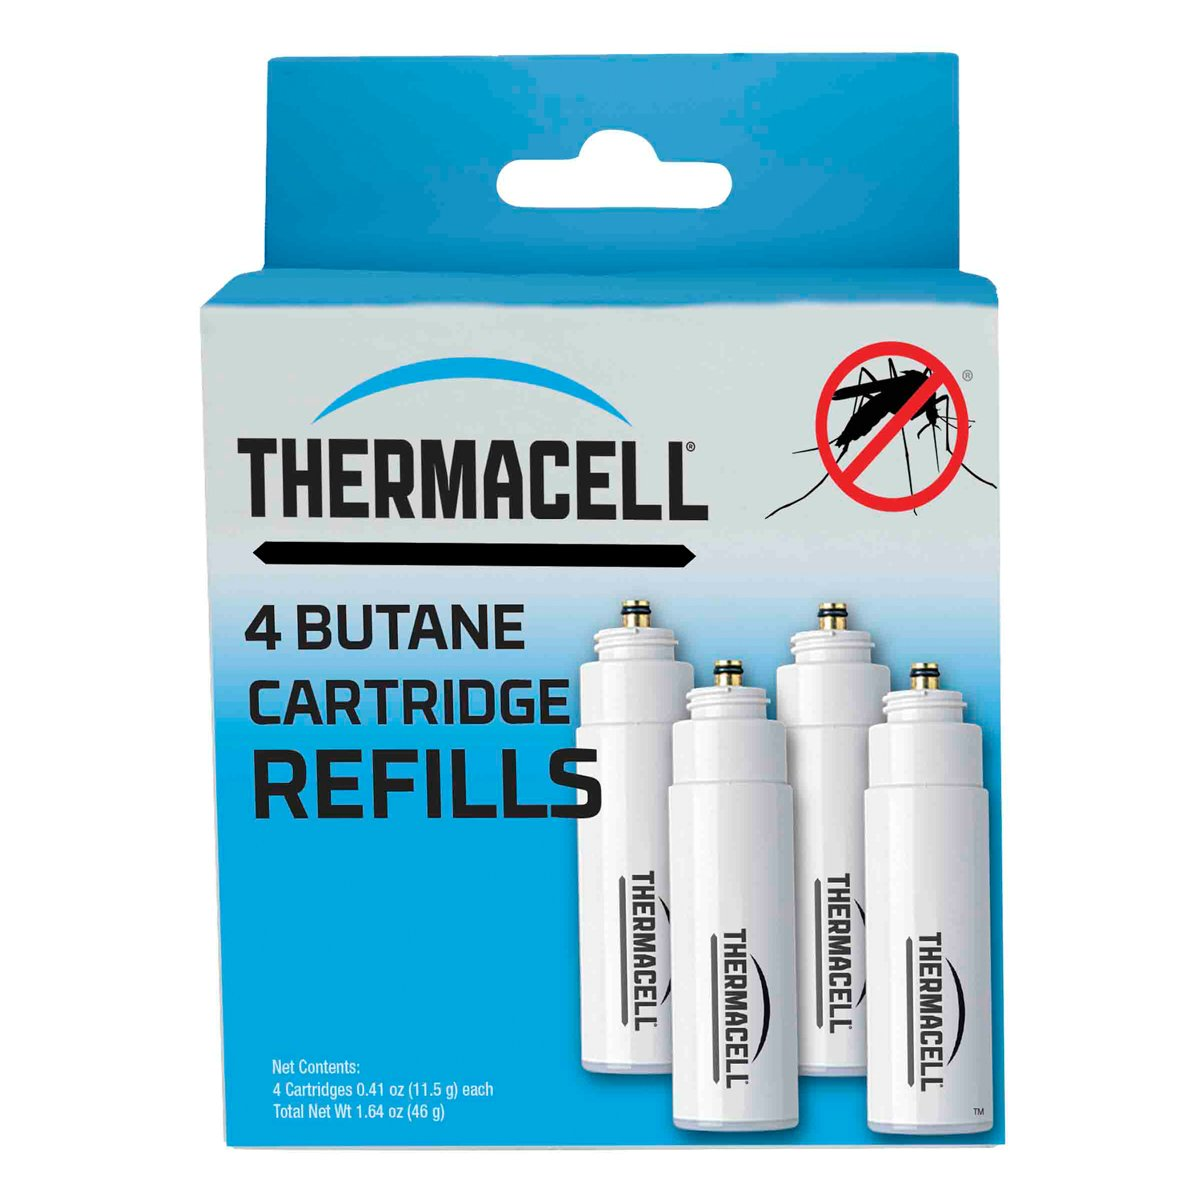 Thermacell C-4 Fuel Cartridge Refill, 4-Pack by Thermacell (Image #1)